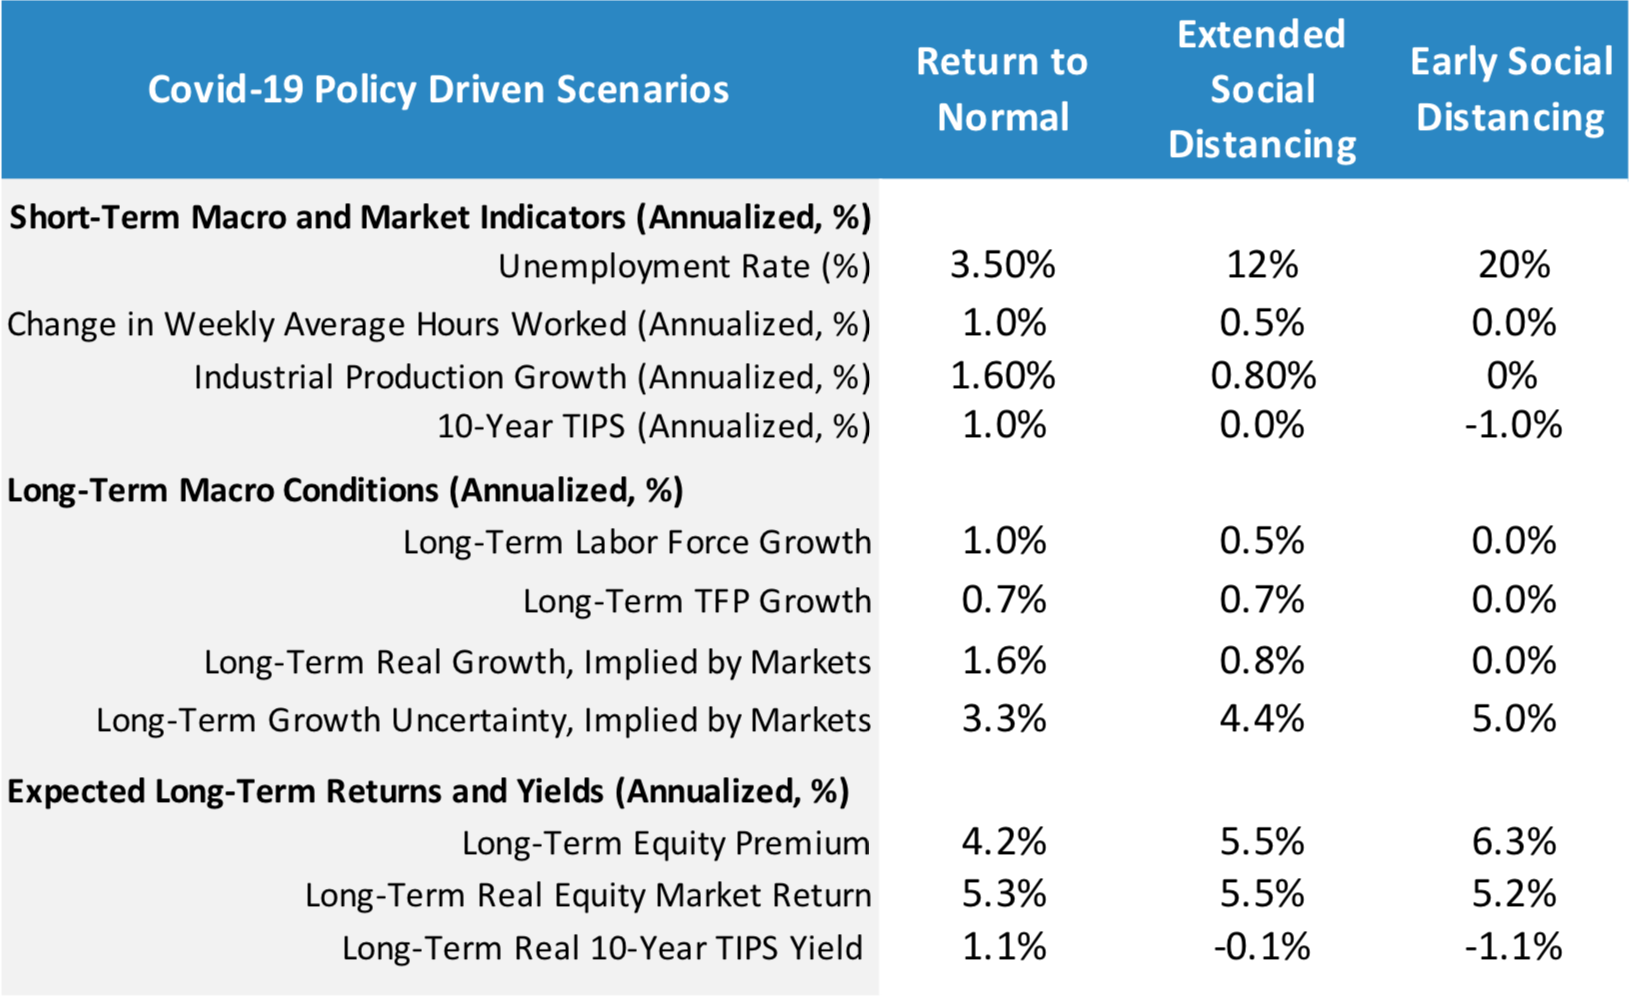 Macro and market impact of Covid-19 policy driven scenarios